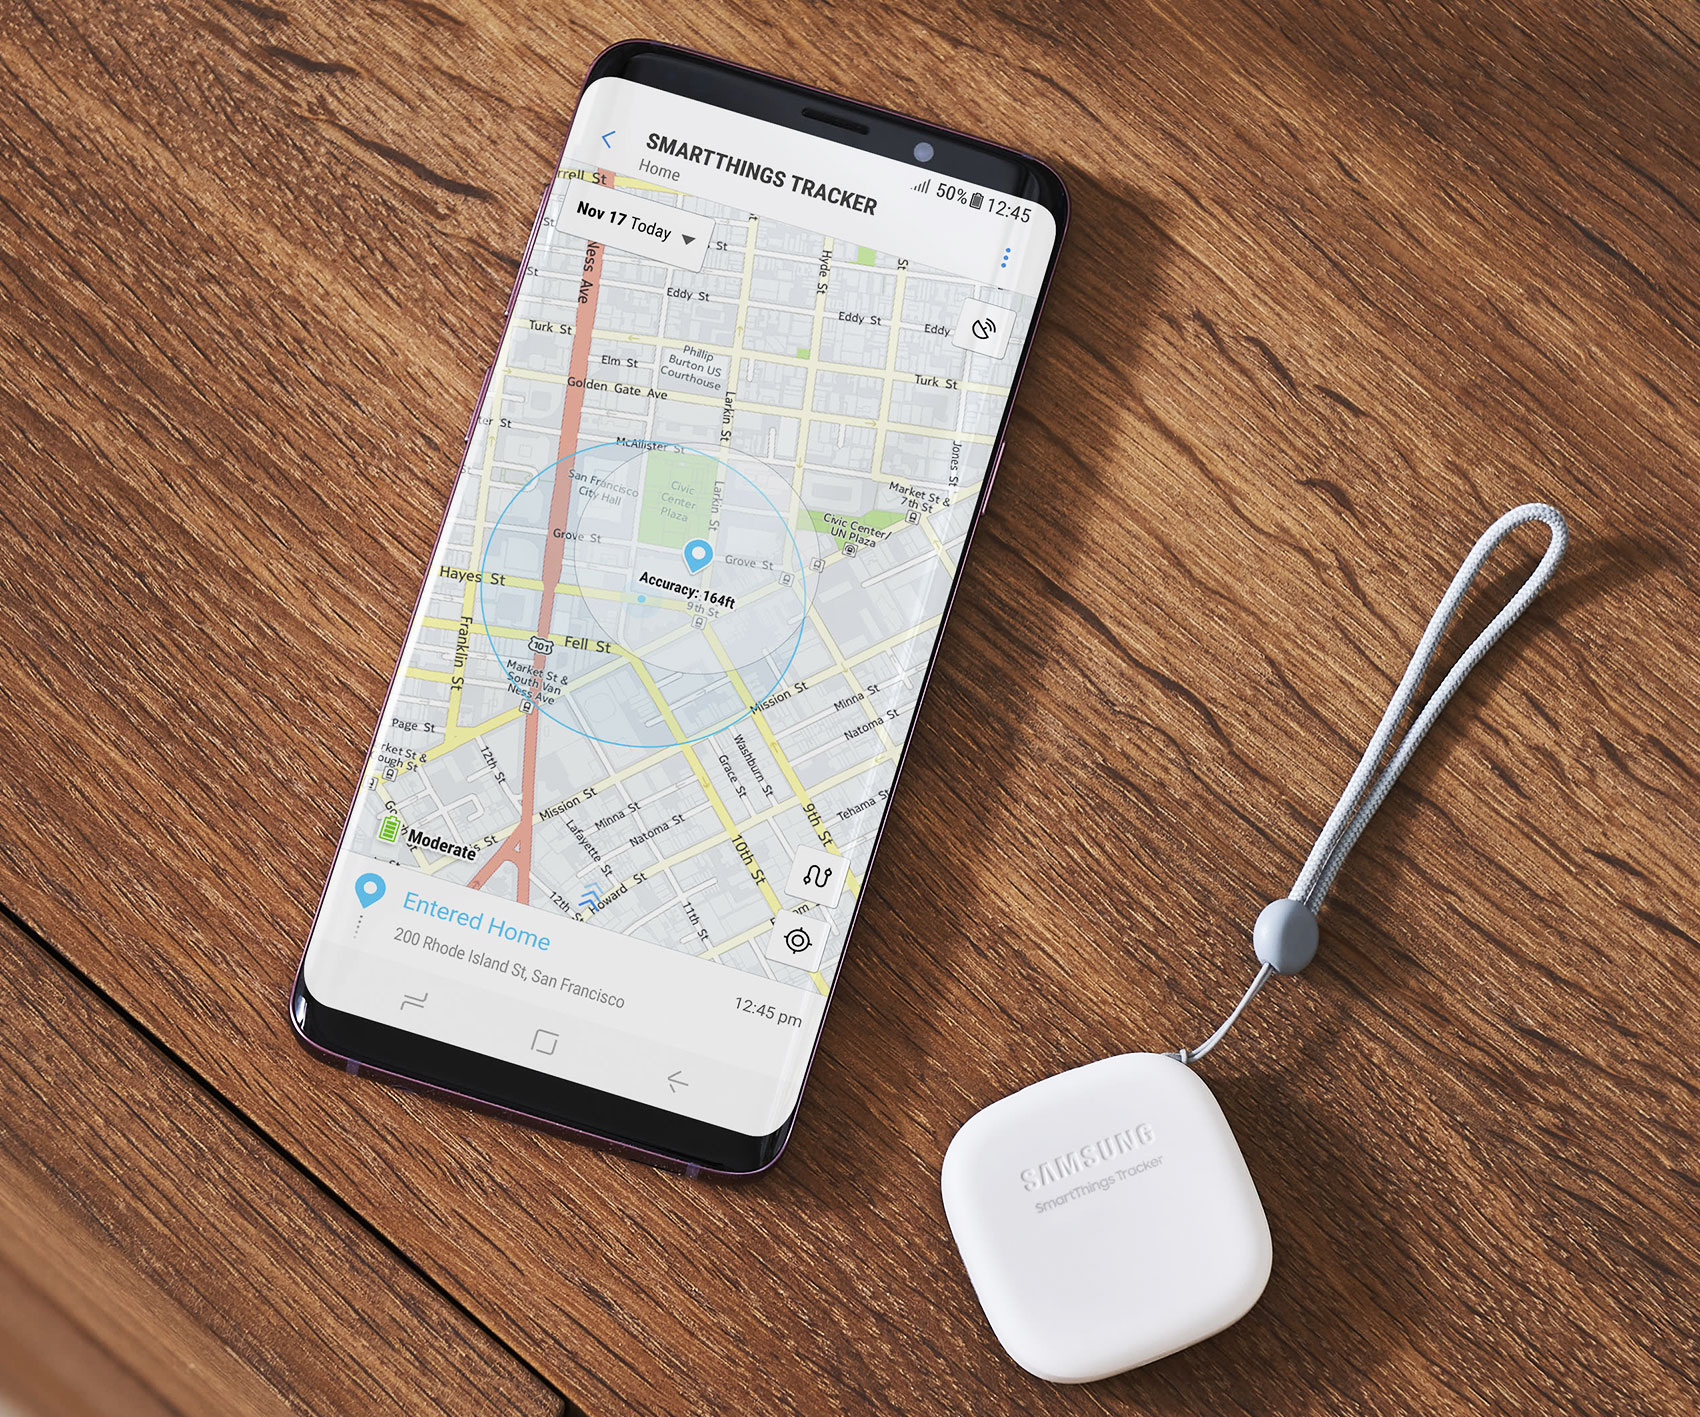 SmartThings Real Time Tracking Device